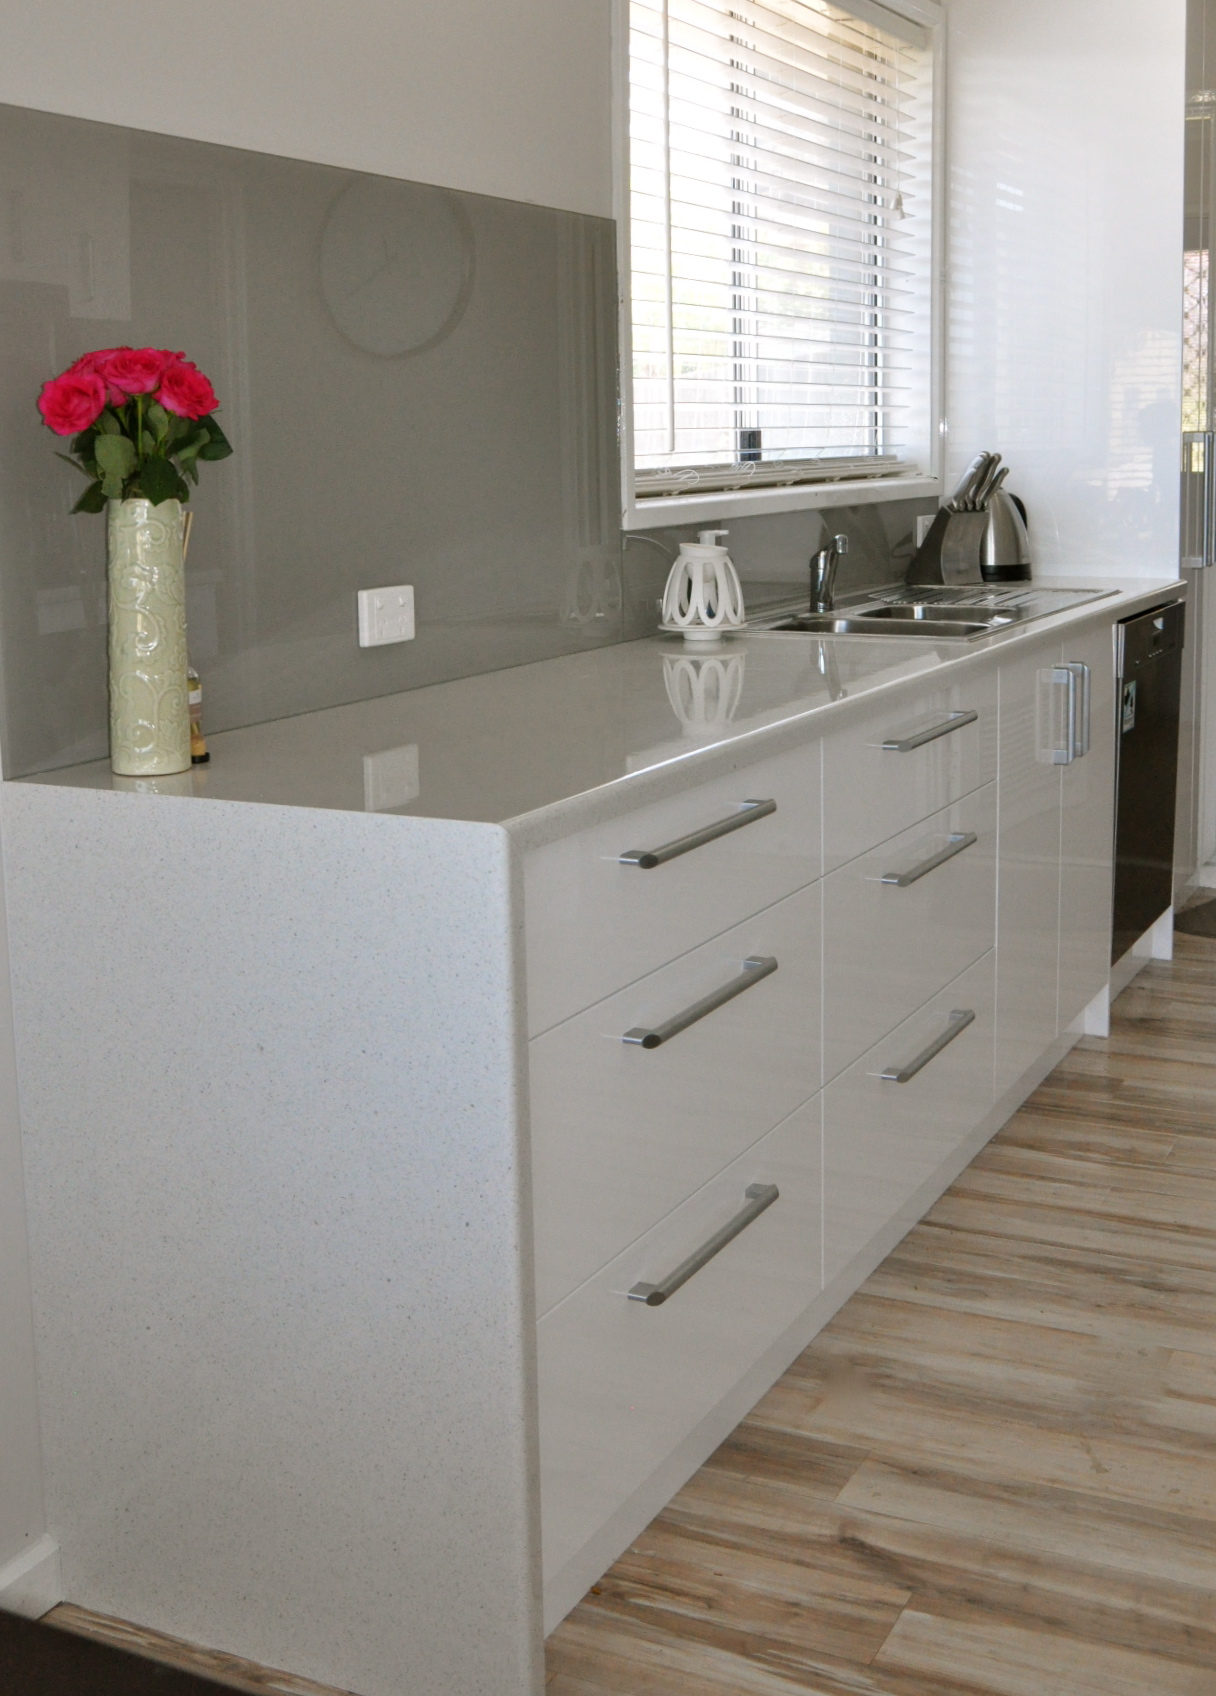 Infinity Kitchens & Joinery  Canberra Kitchen Renovations